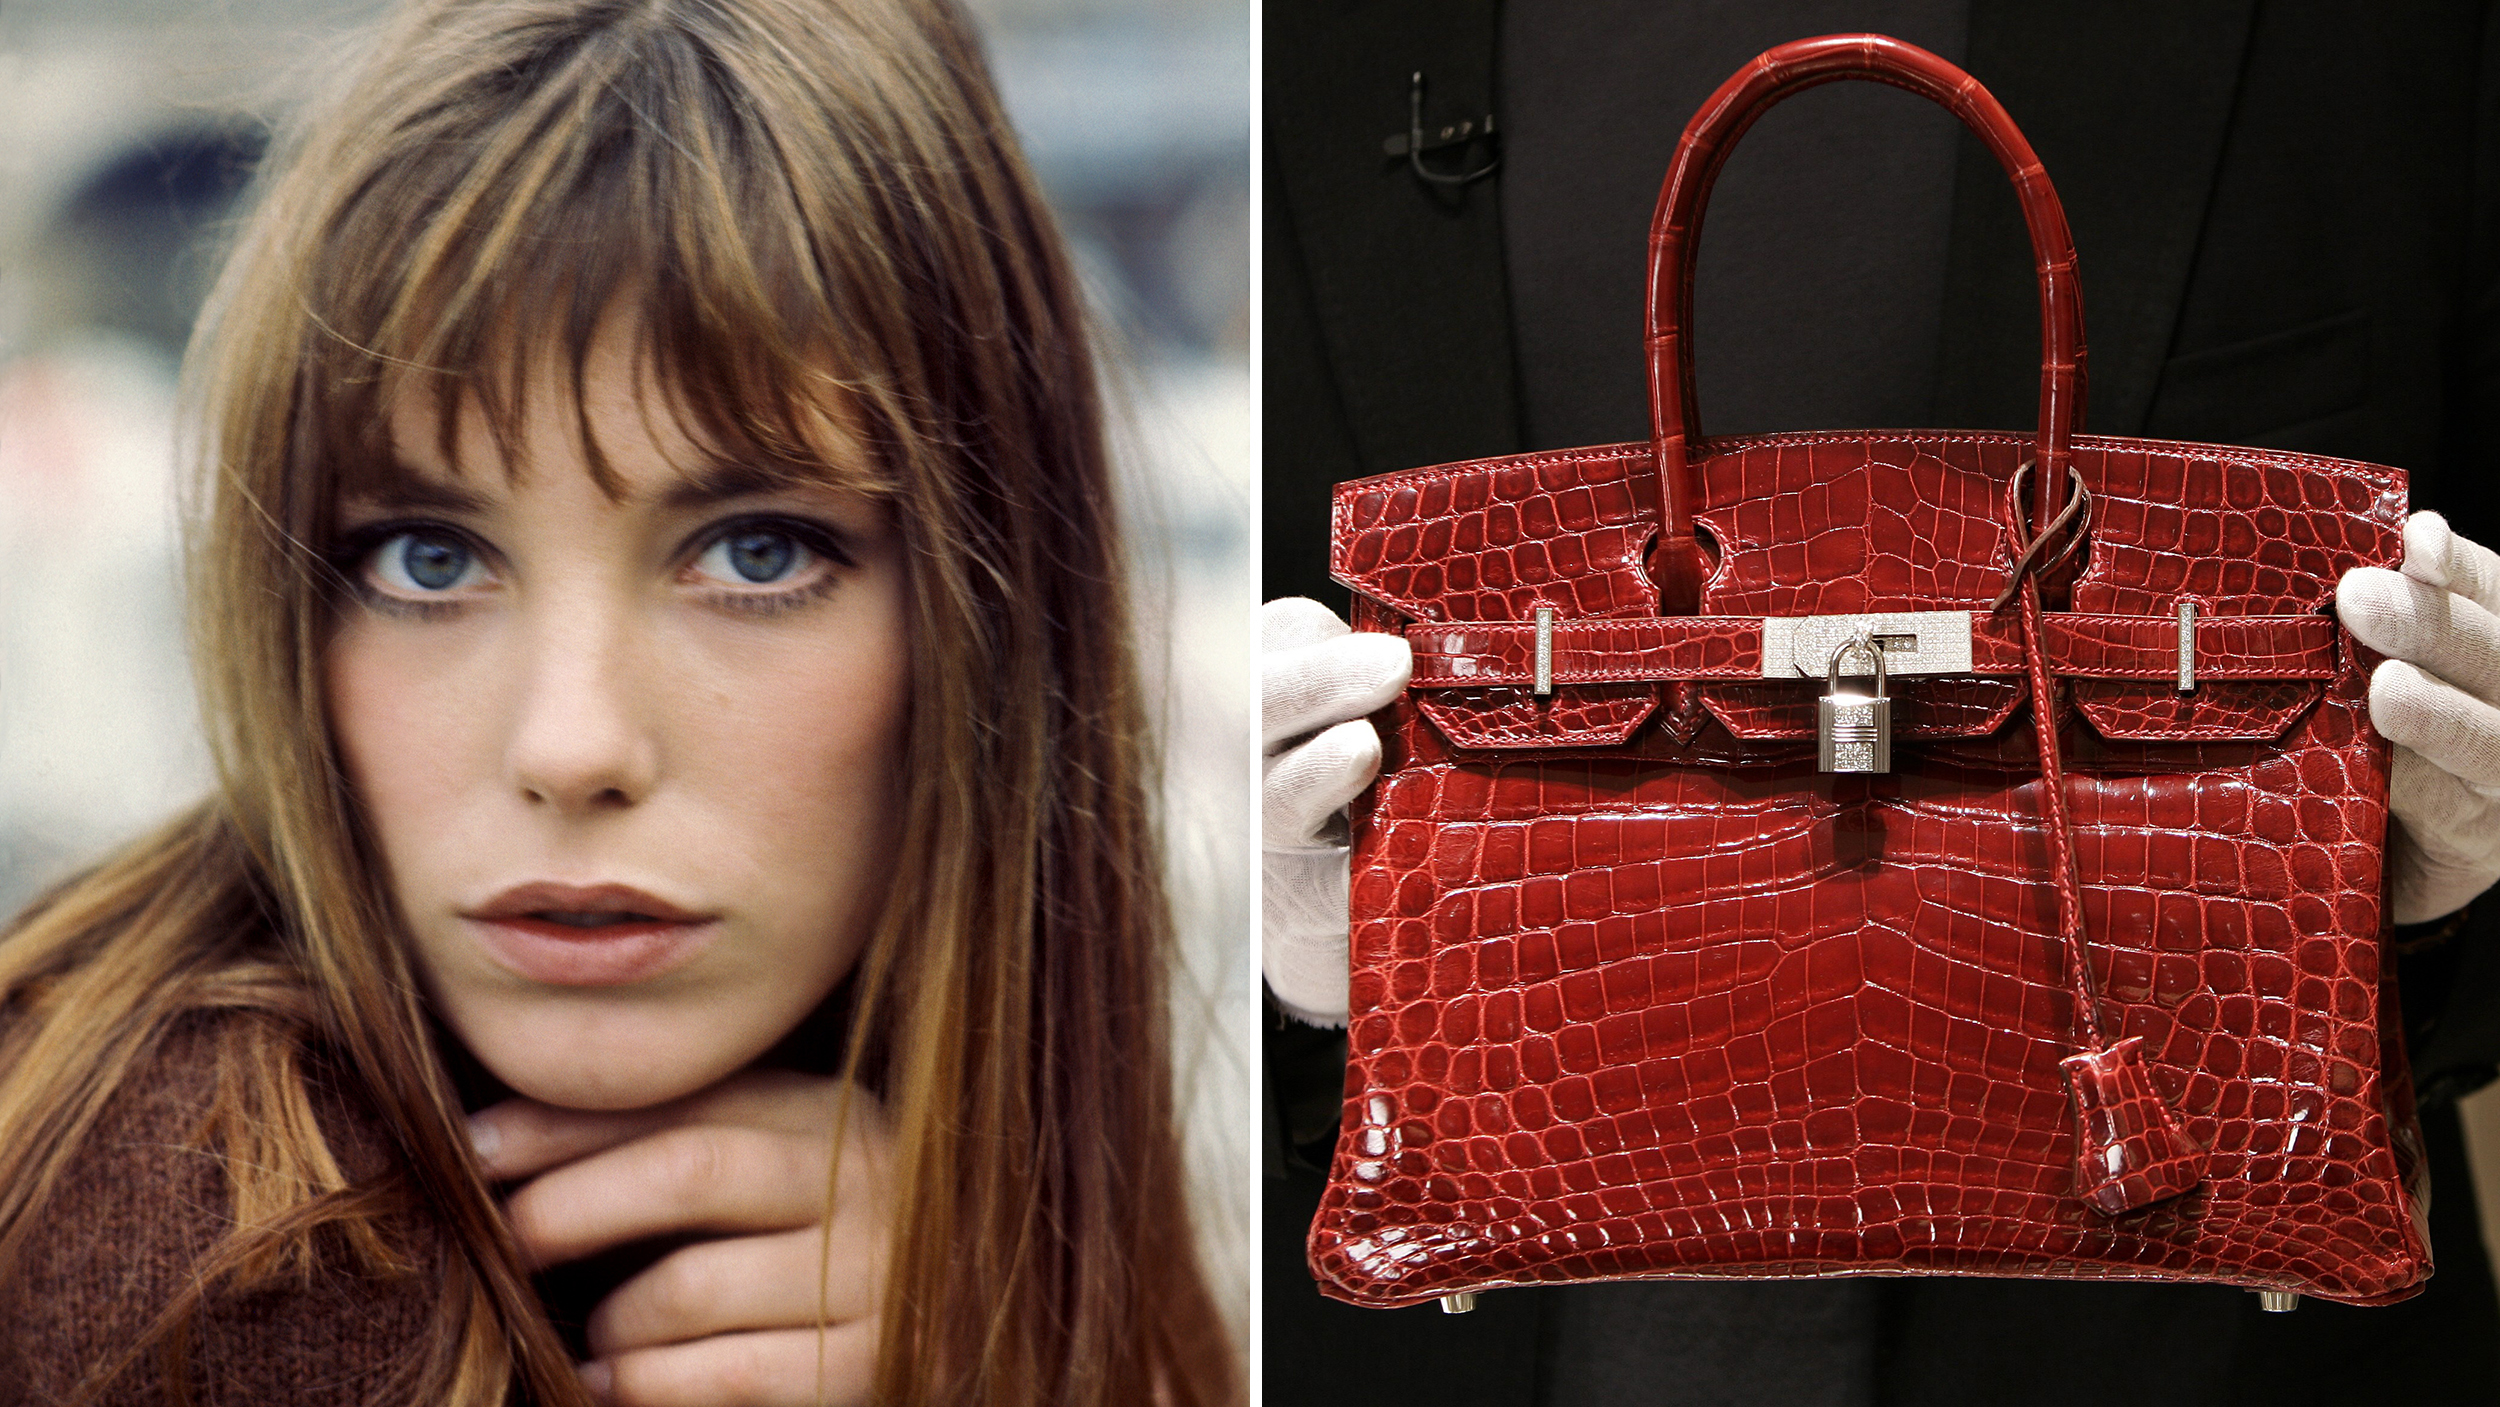 Jane Birkin asks Hermès to remove her name from handbag